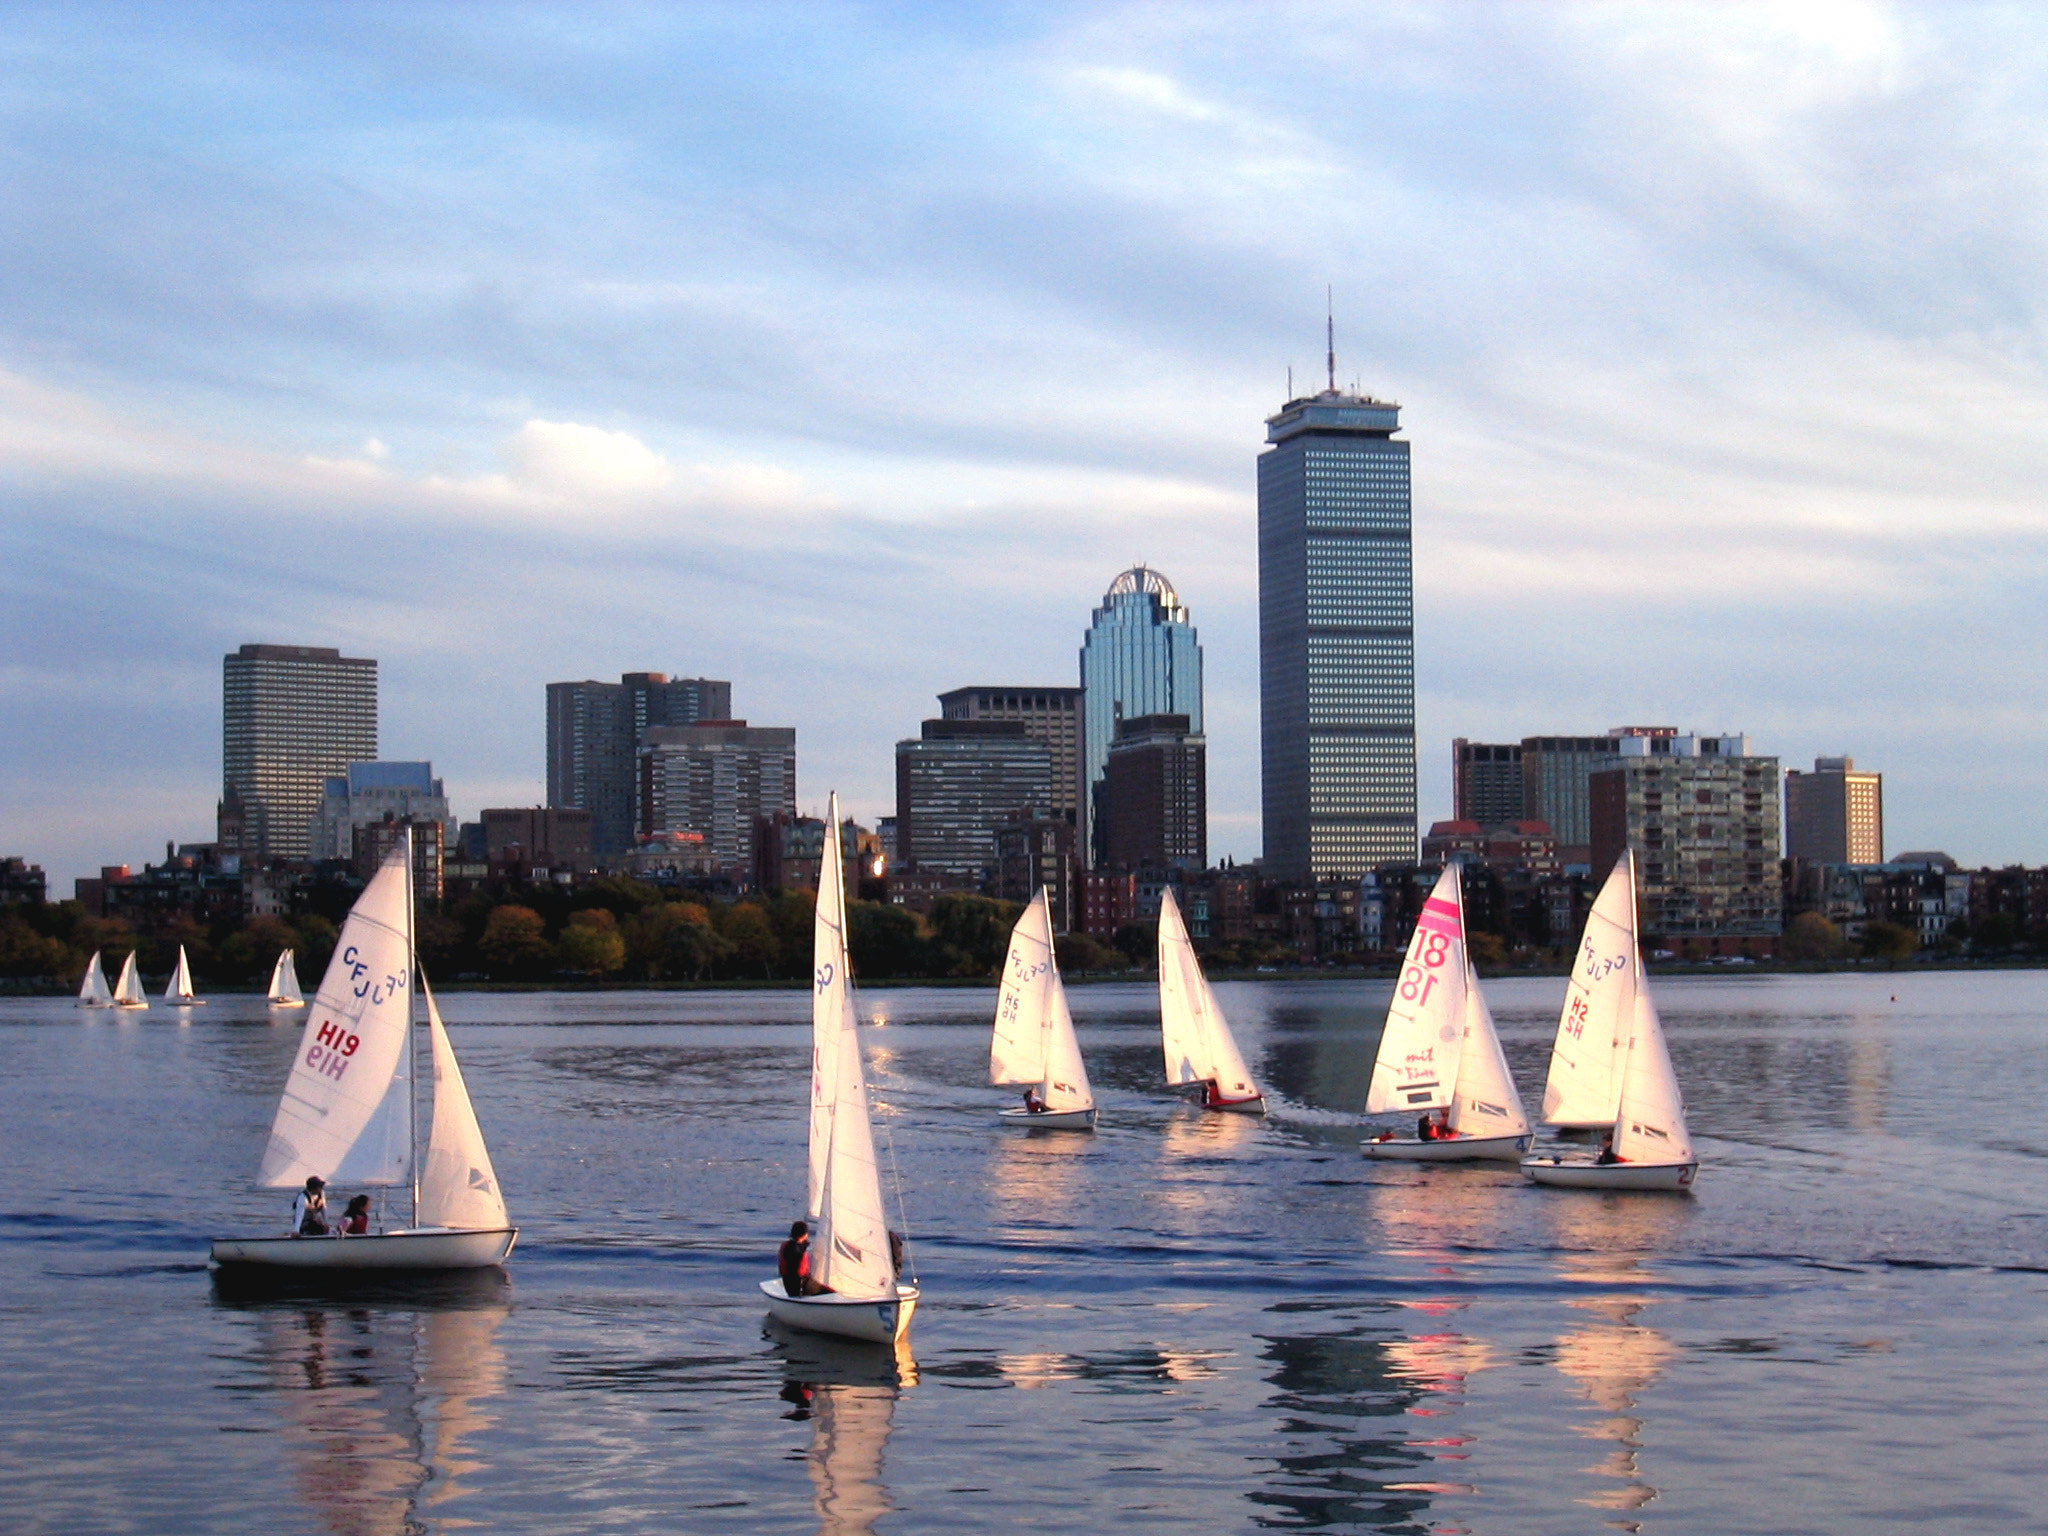 Photograph Sailing on Charles River by Dana Pavel on 500px